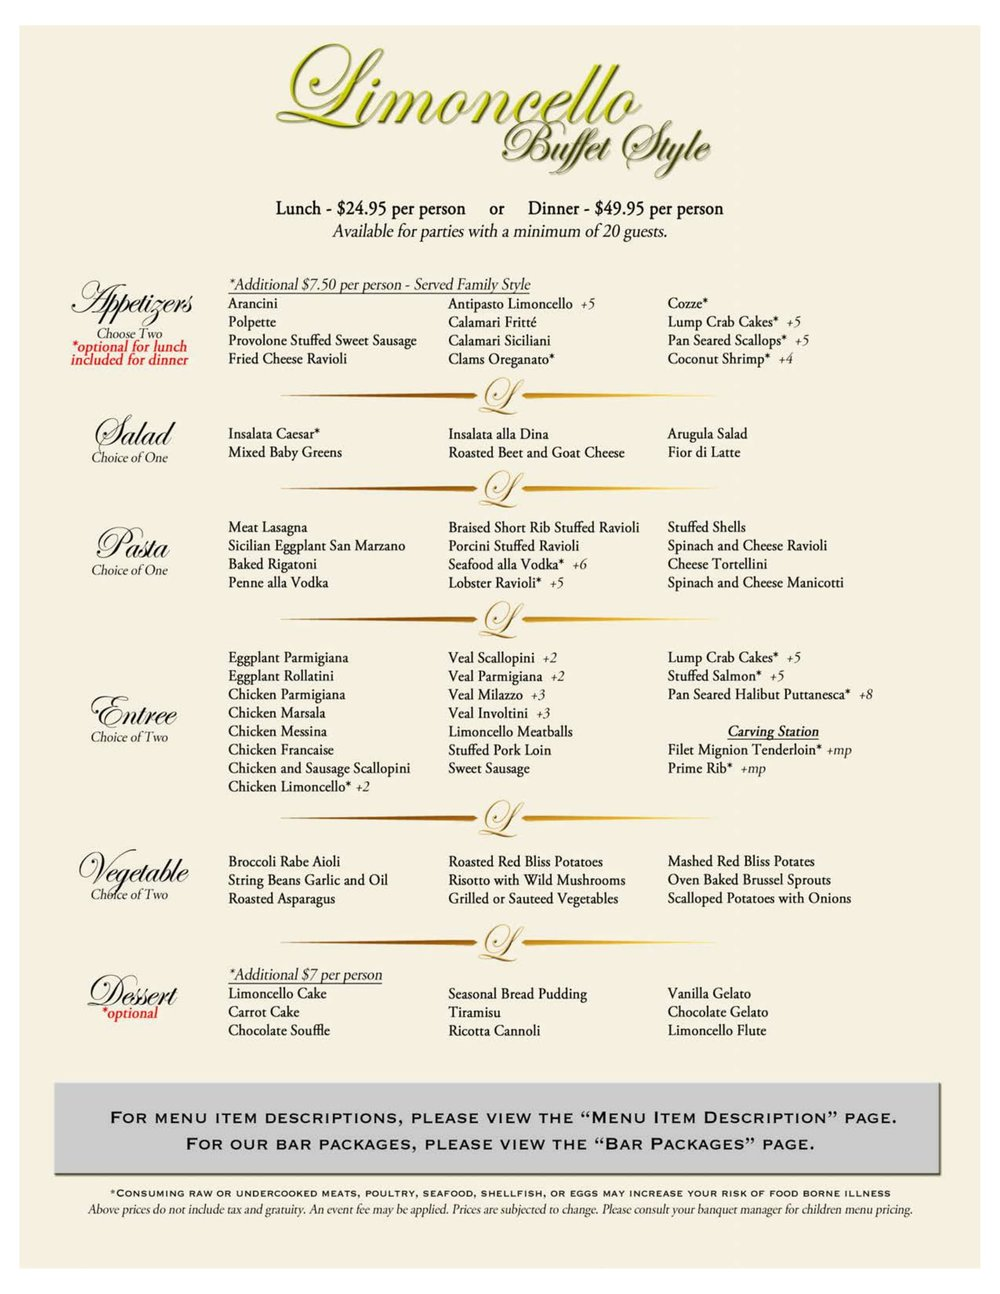 banquet menu new-2.jpg